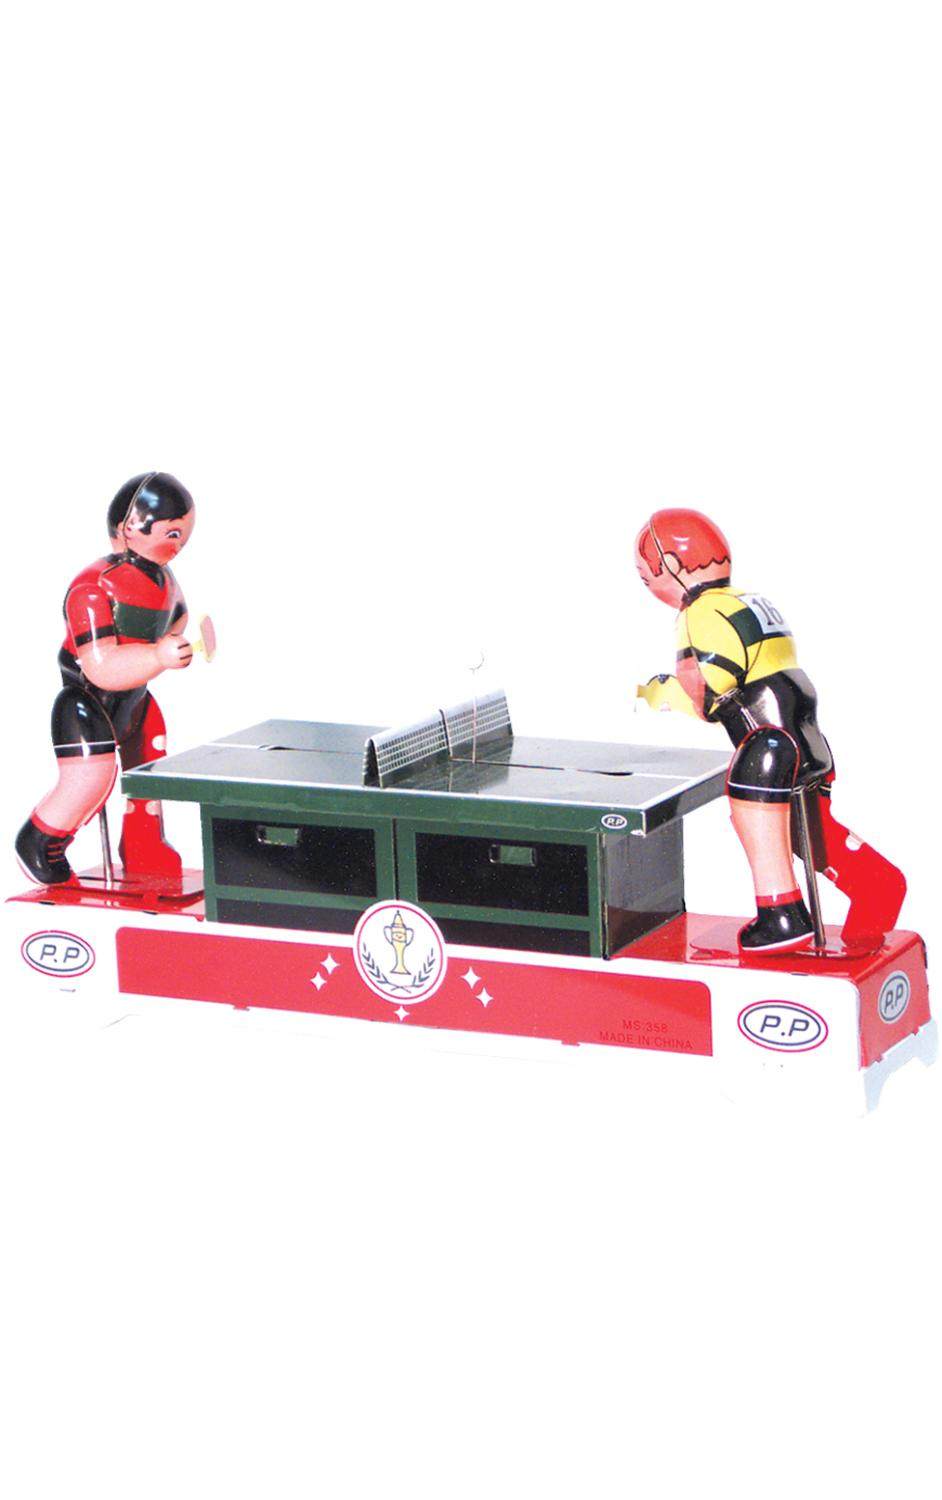 MS358 - Collectible Tin Toy - Ping Pong Players - 5